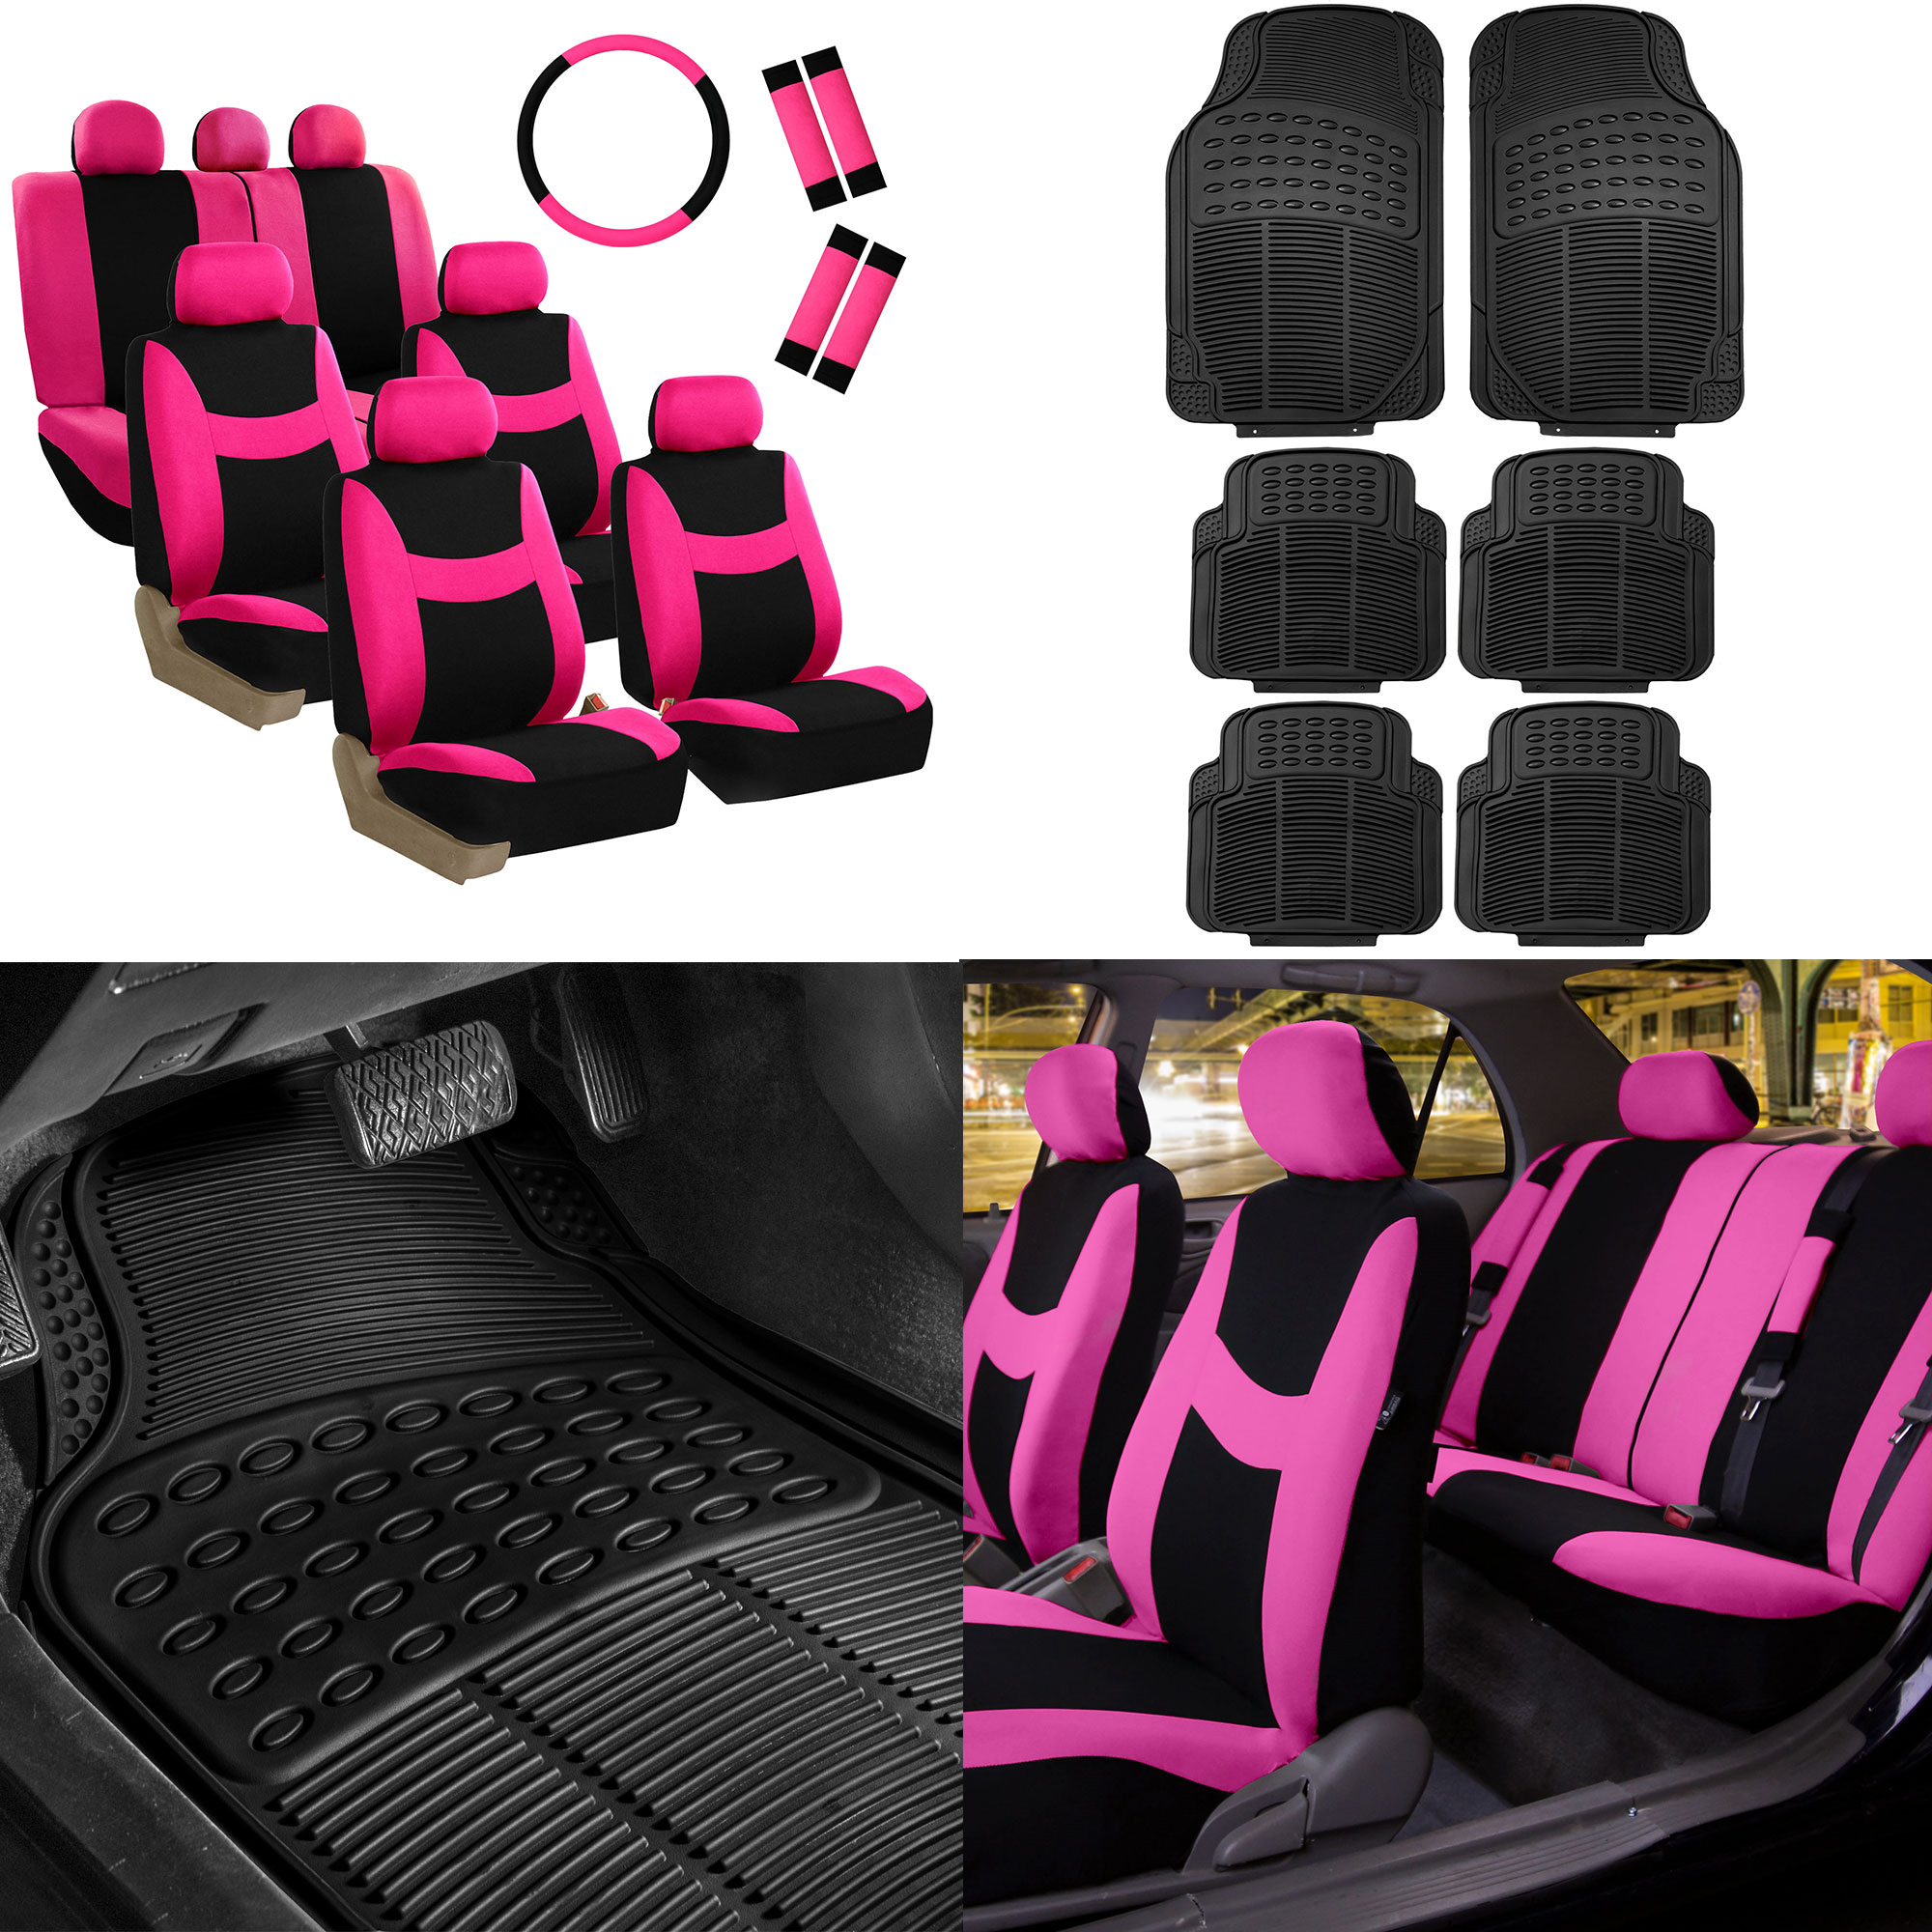 FH Group, 7 Seater 3 Row Pink Seat Covers for SUV Van Accesory Combo w/ Black Floor Mats